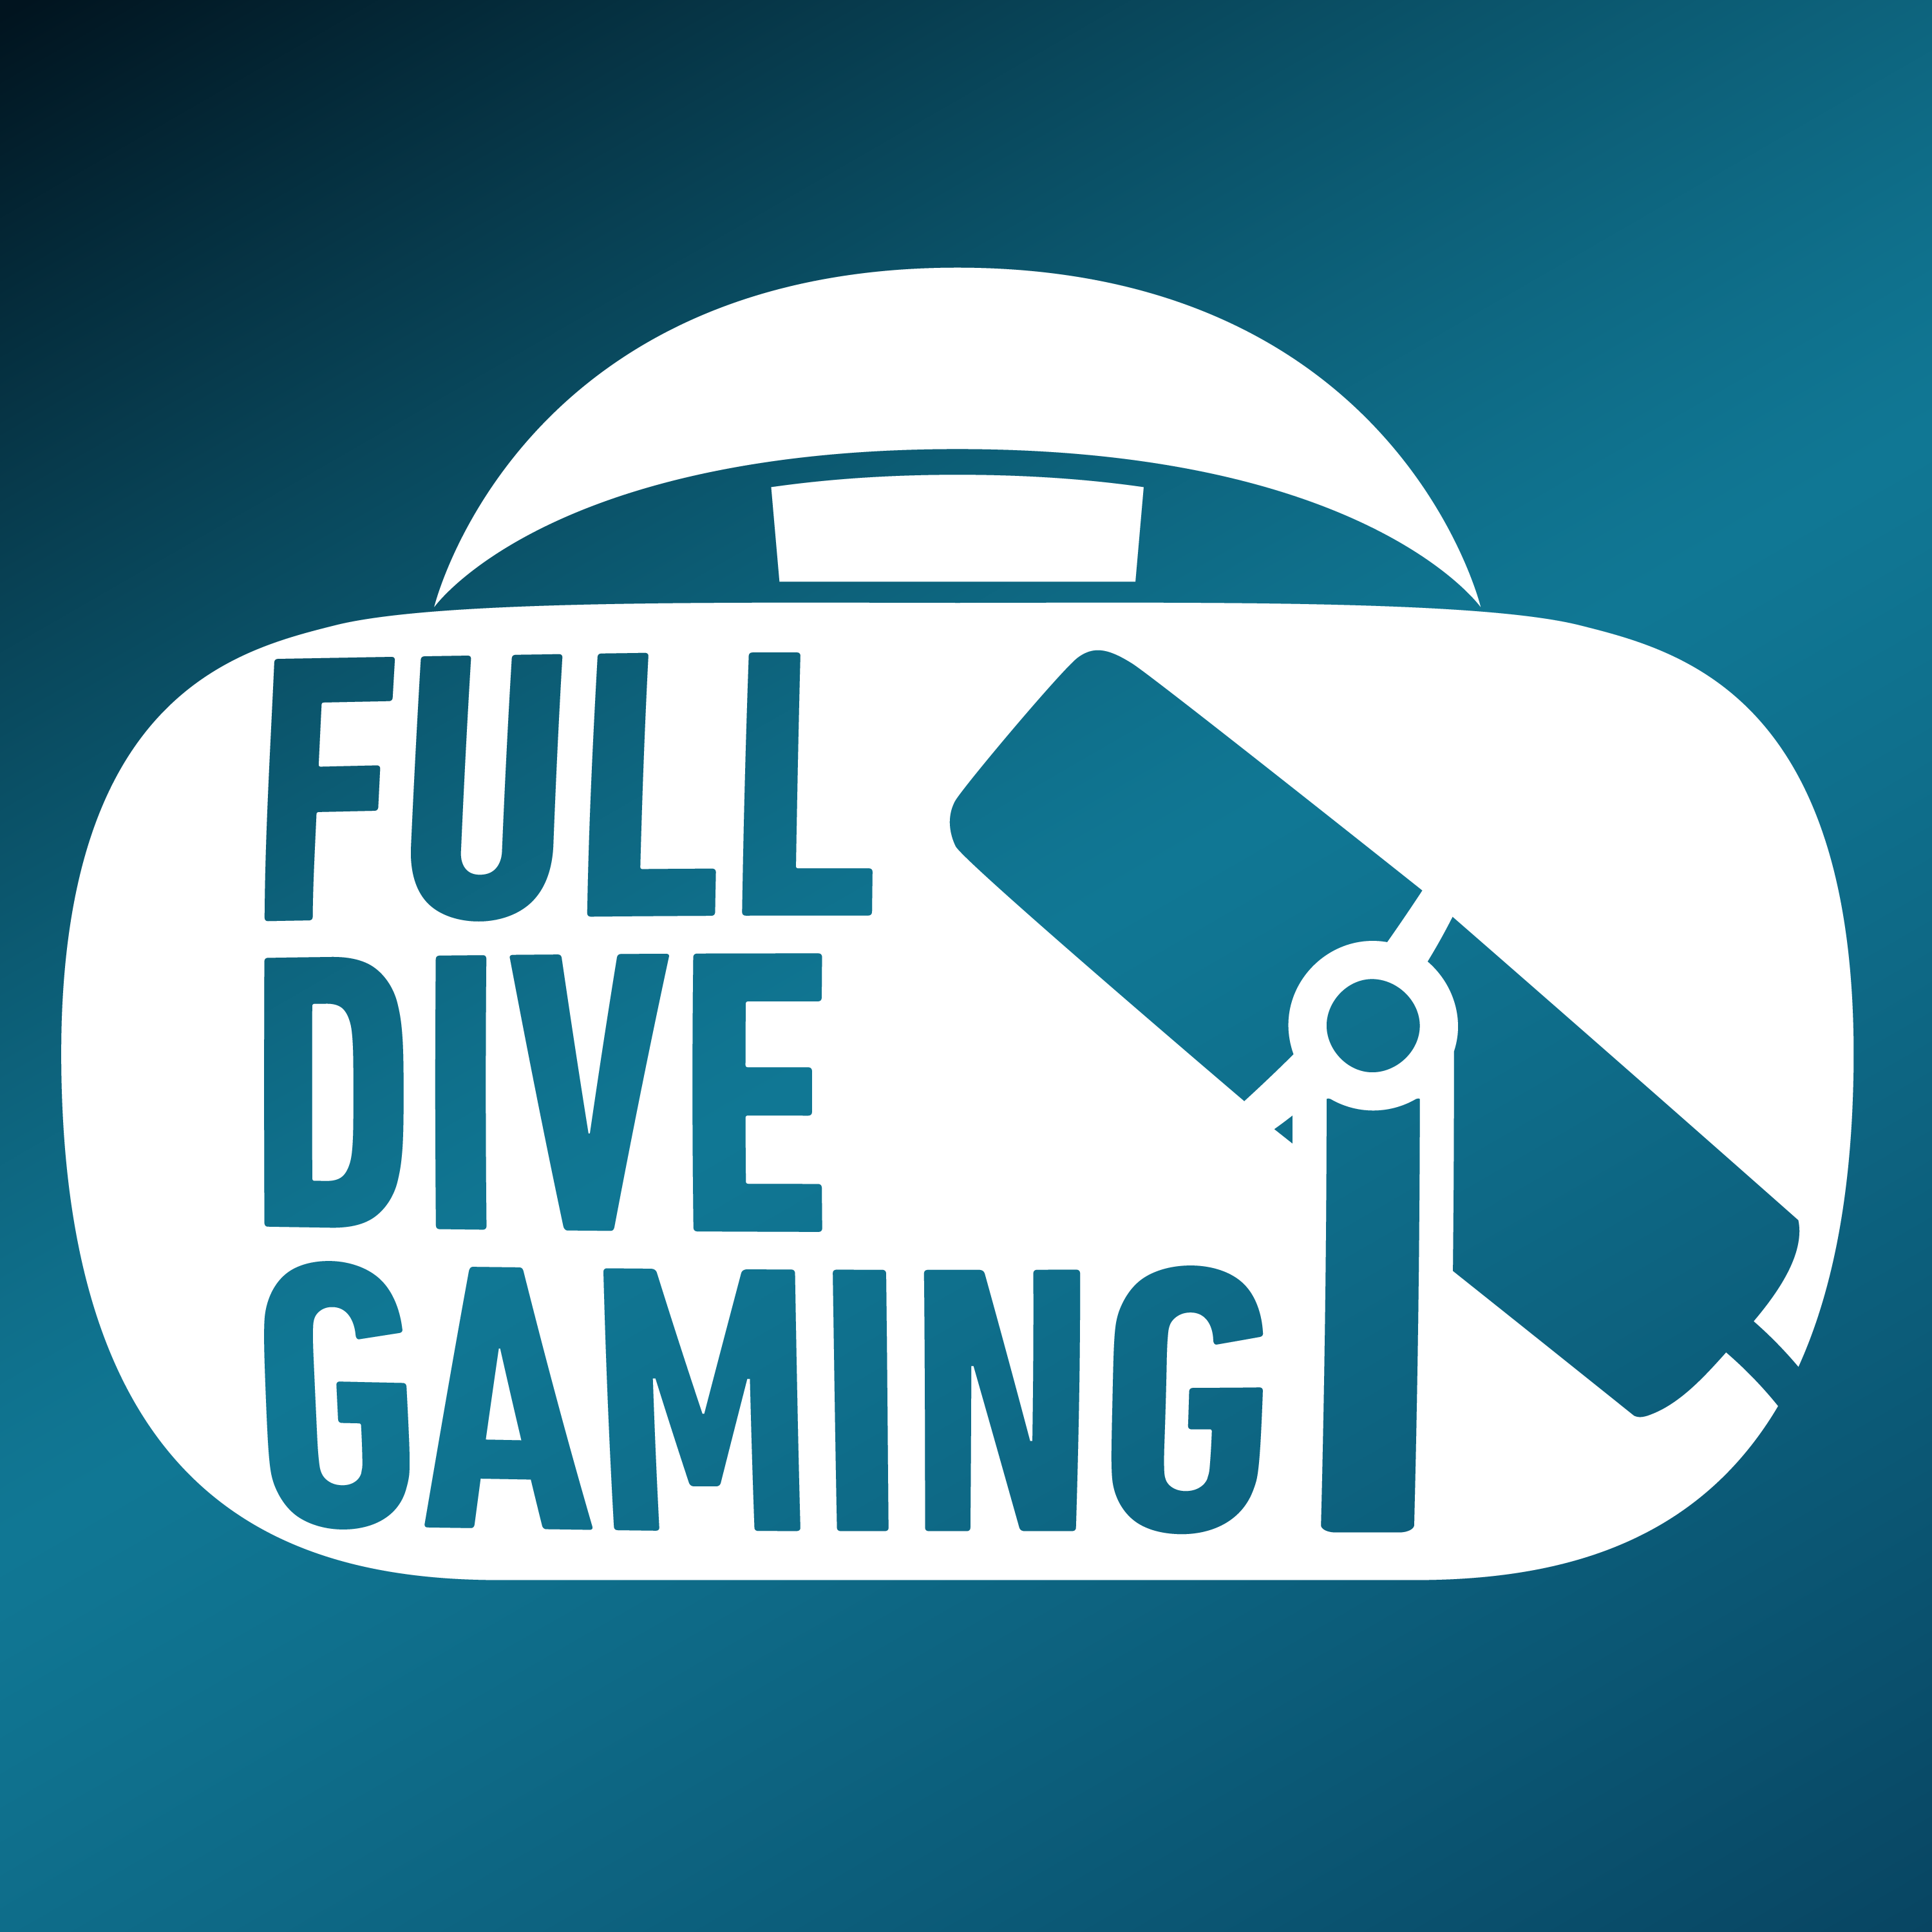 Artwork for podcast Full Dive Gaming: a Virtual Reality Podcast in VR